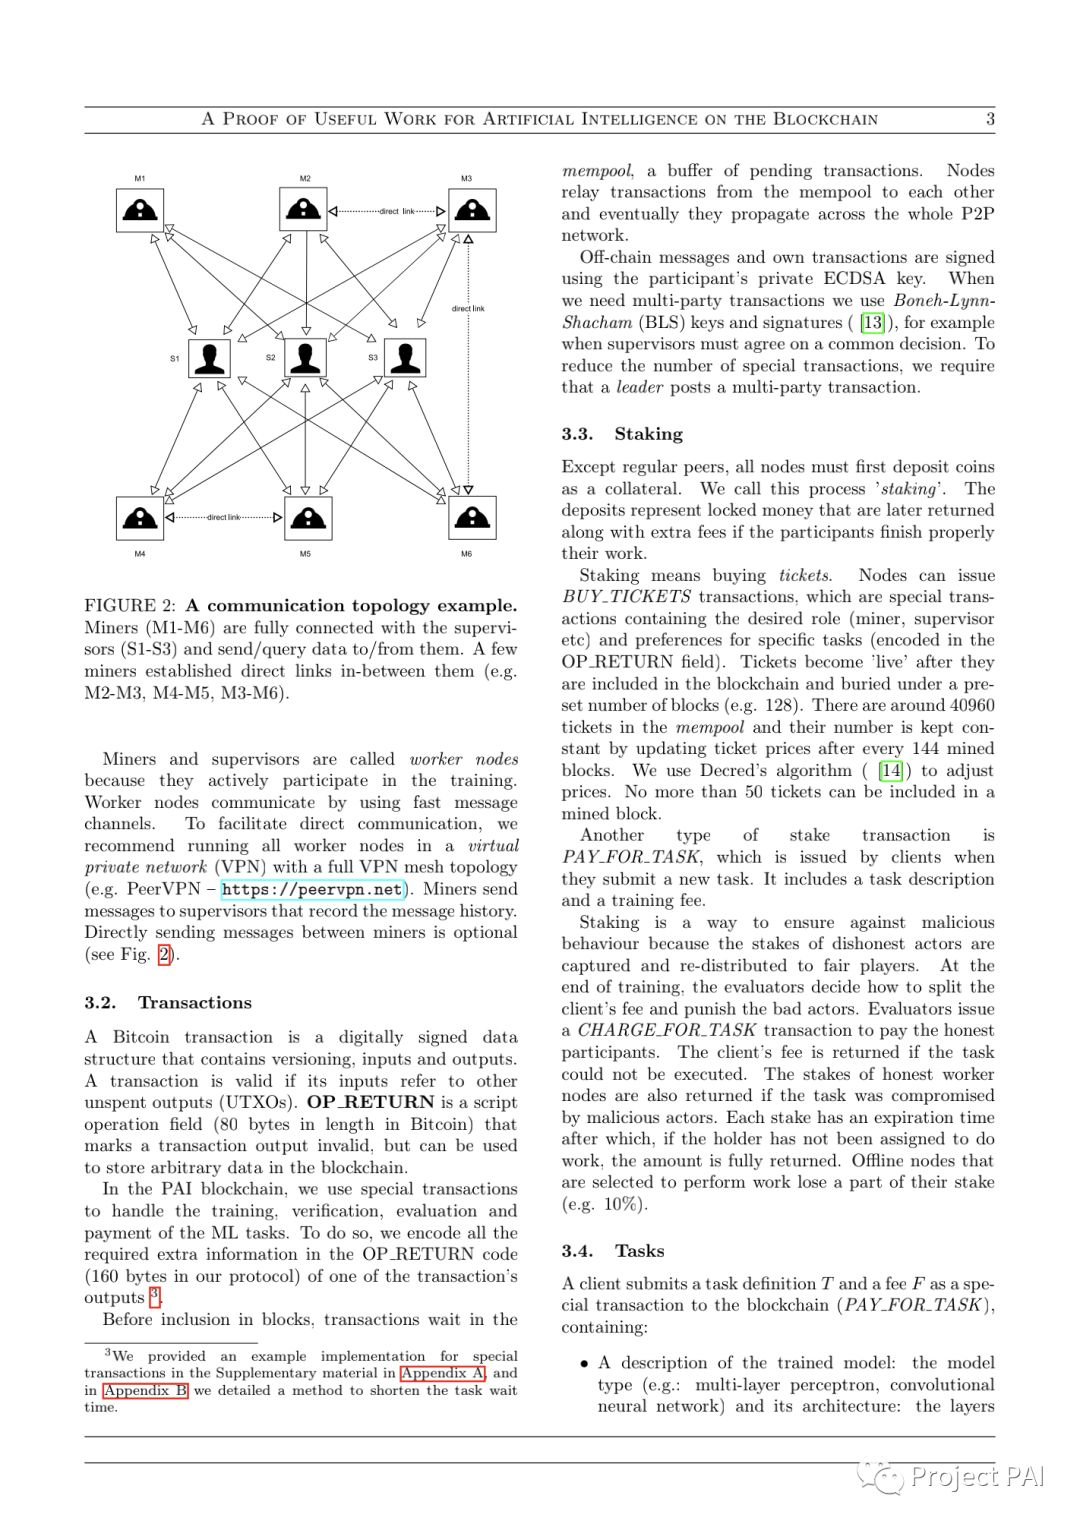 [PoUW论文英文版] A Proof of Useful Work for AI on the Blockchain